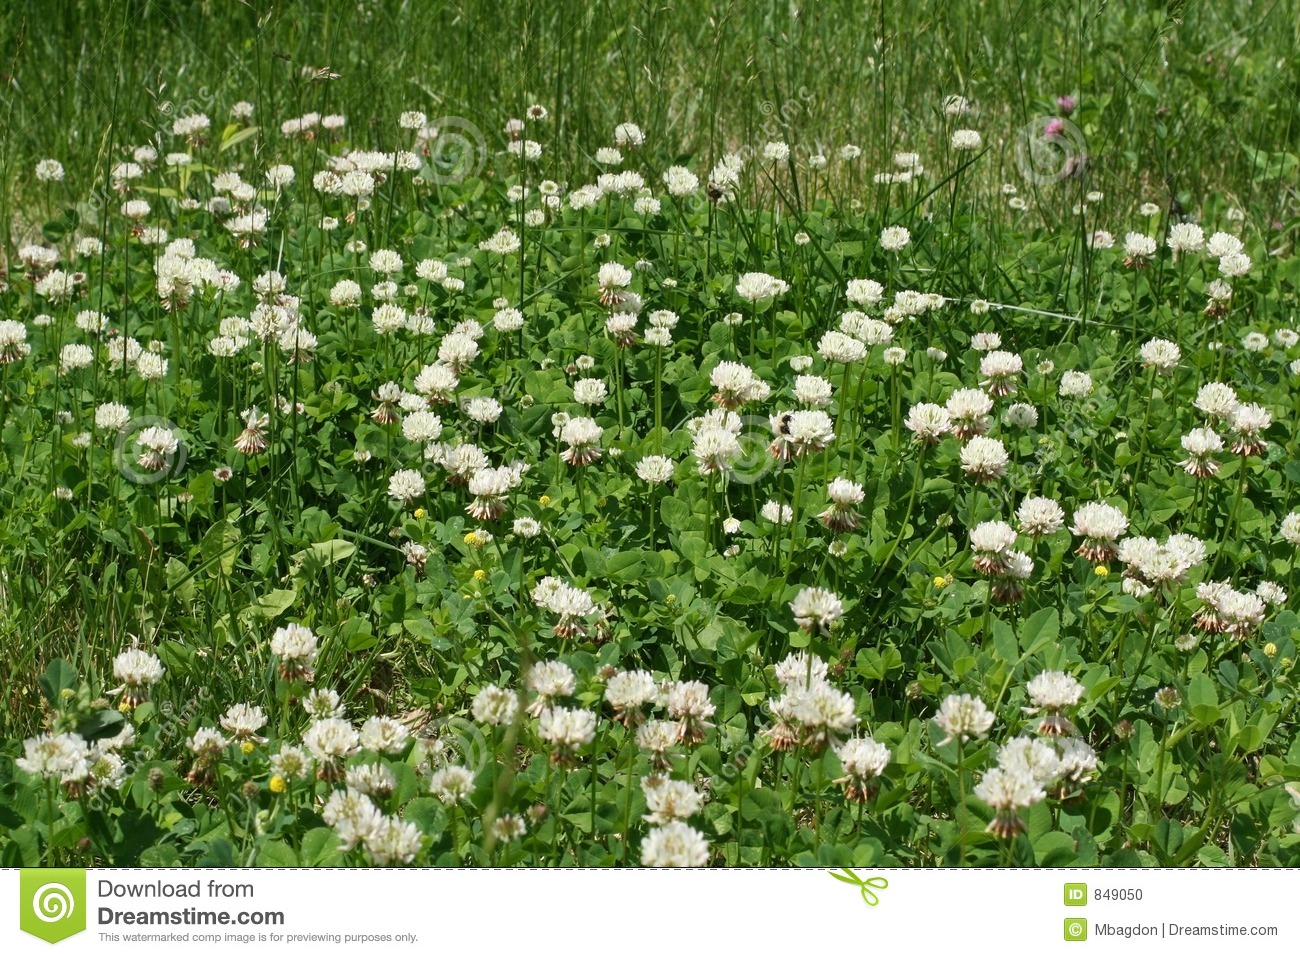 Clovers And White Weed Flowers Stock Photo Image Of Lawn Flower